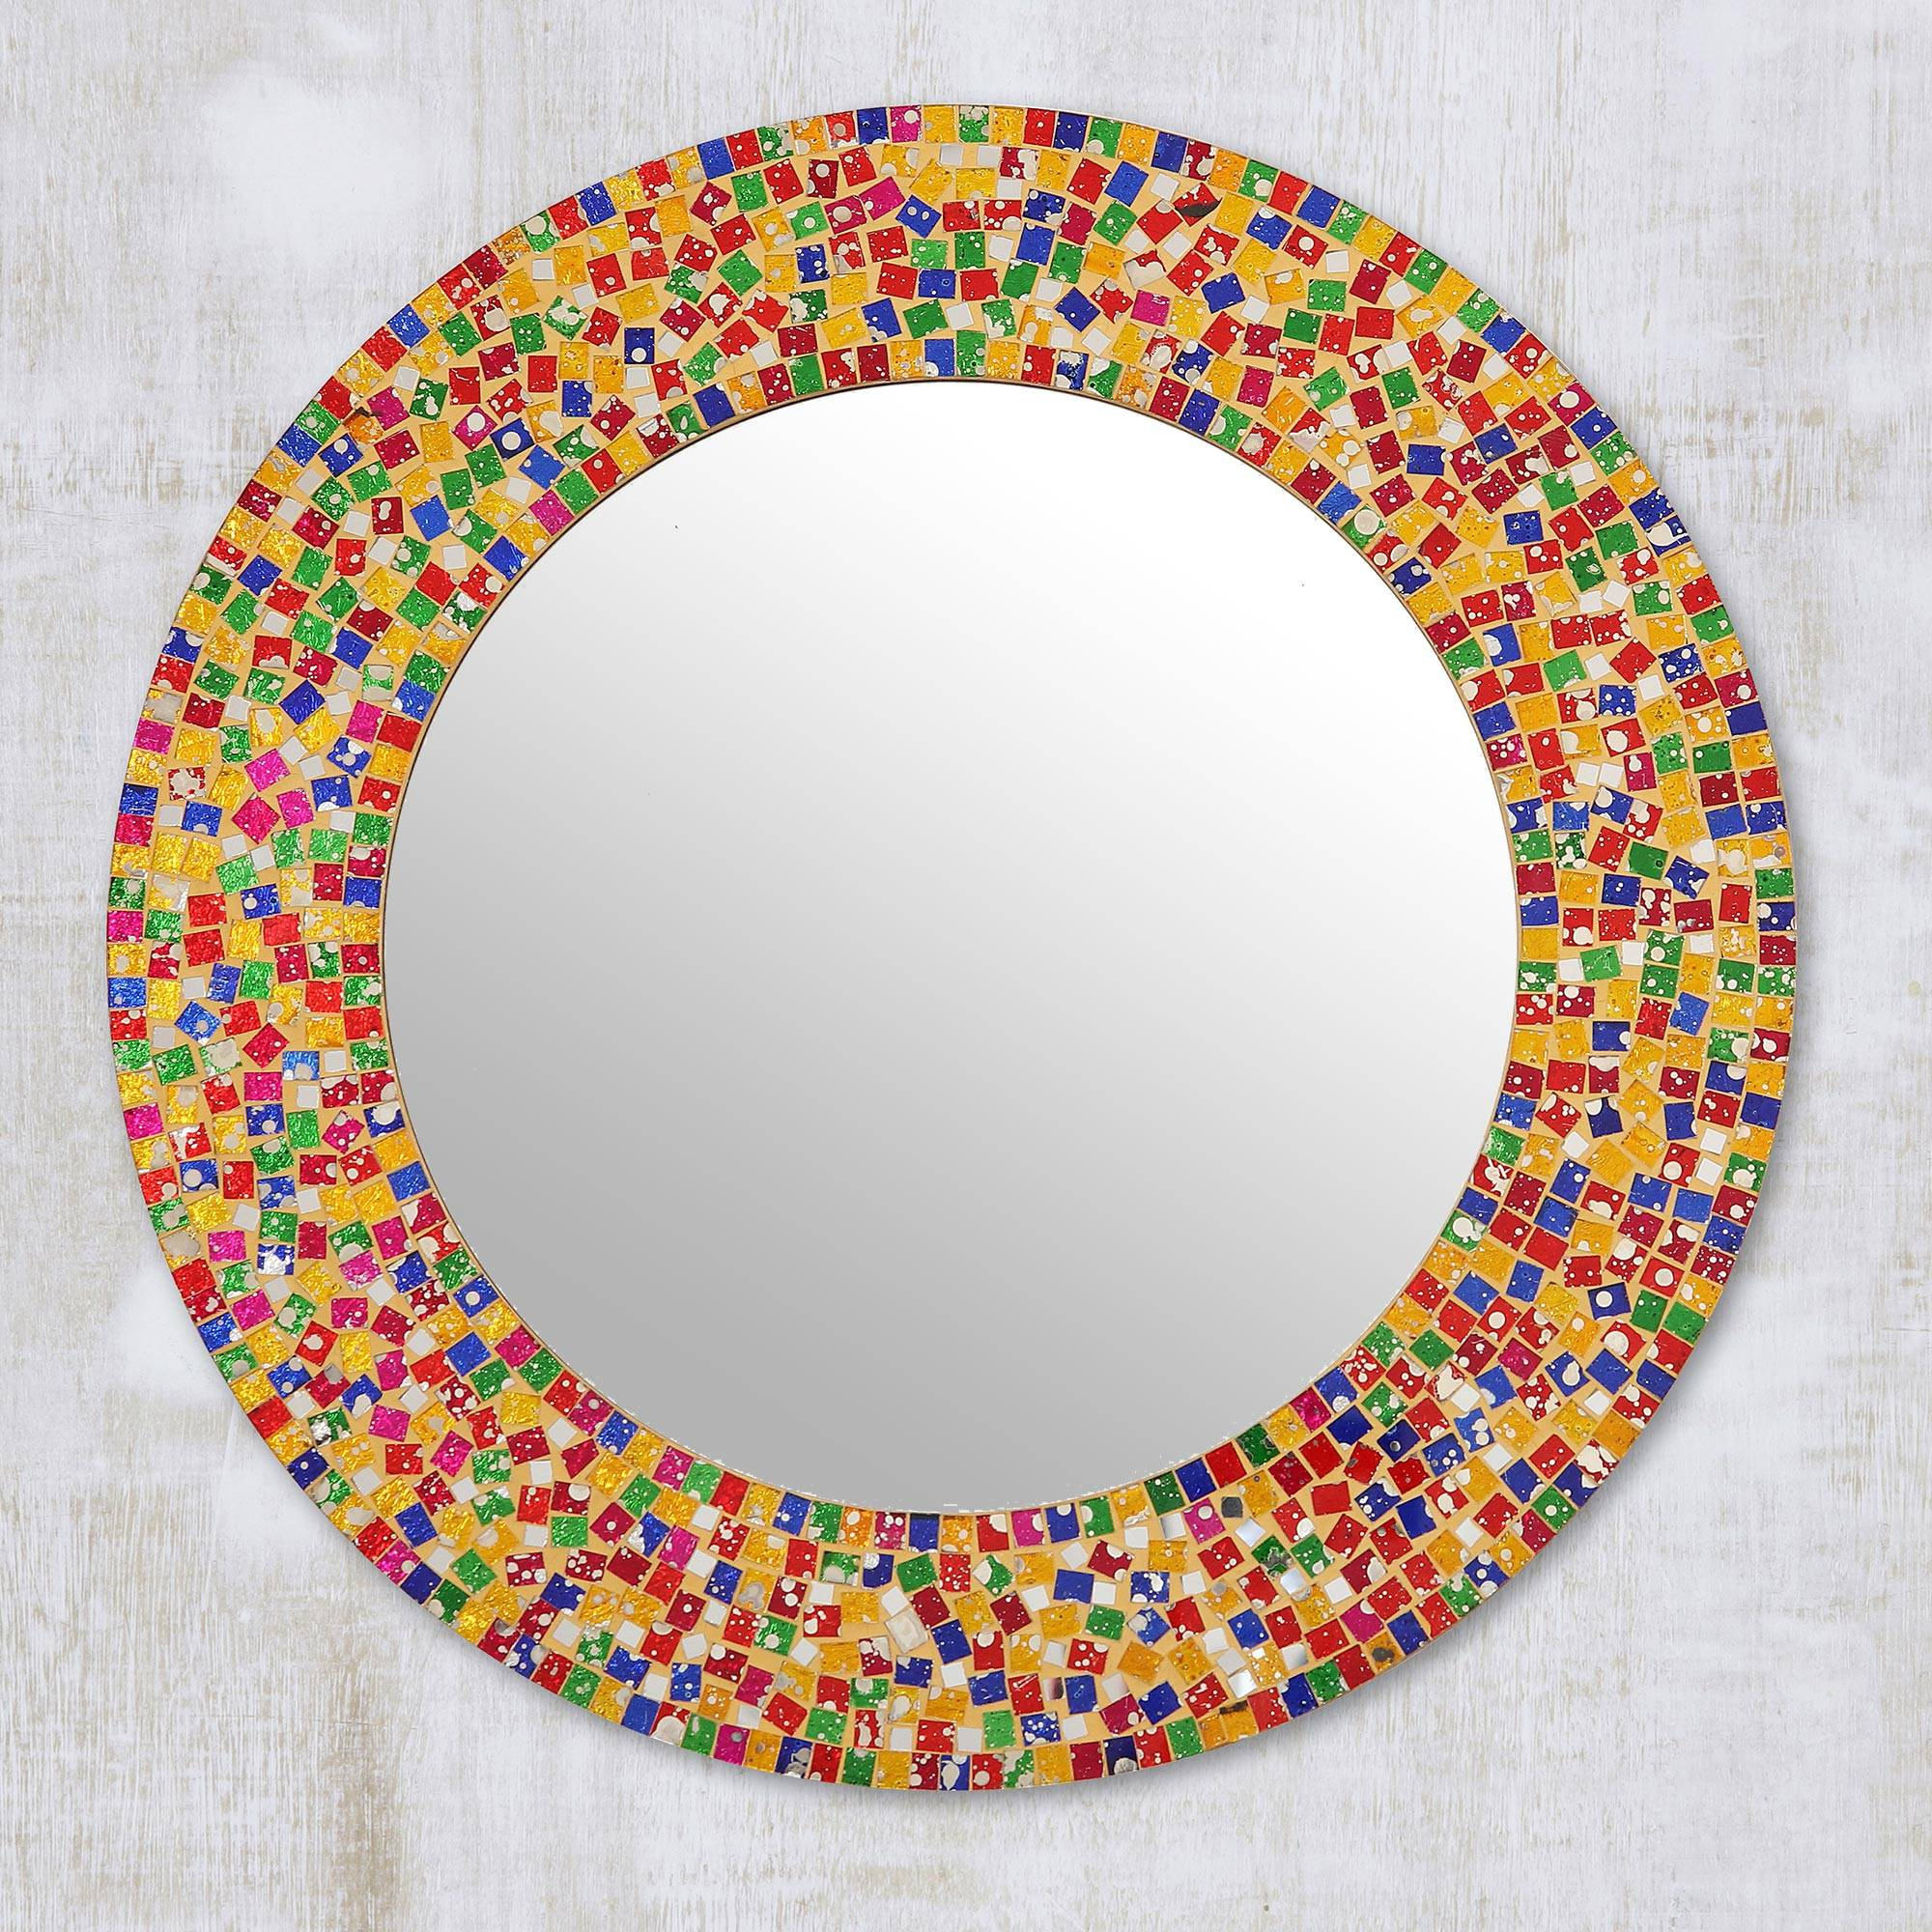 Round Colorful Glass Mosaic Wall Mirror From India, 'colorful Dazzle' Throughout Most Up To Date Glass Mosaic Wall Mirrors (View 10 of 20)